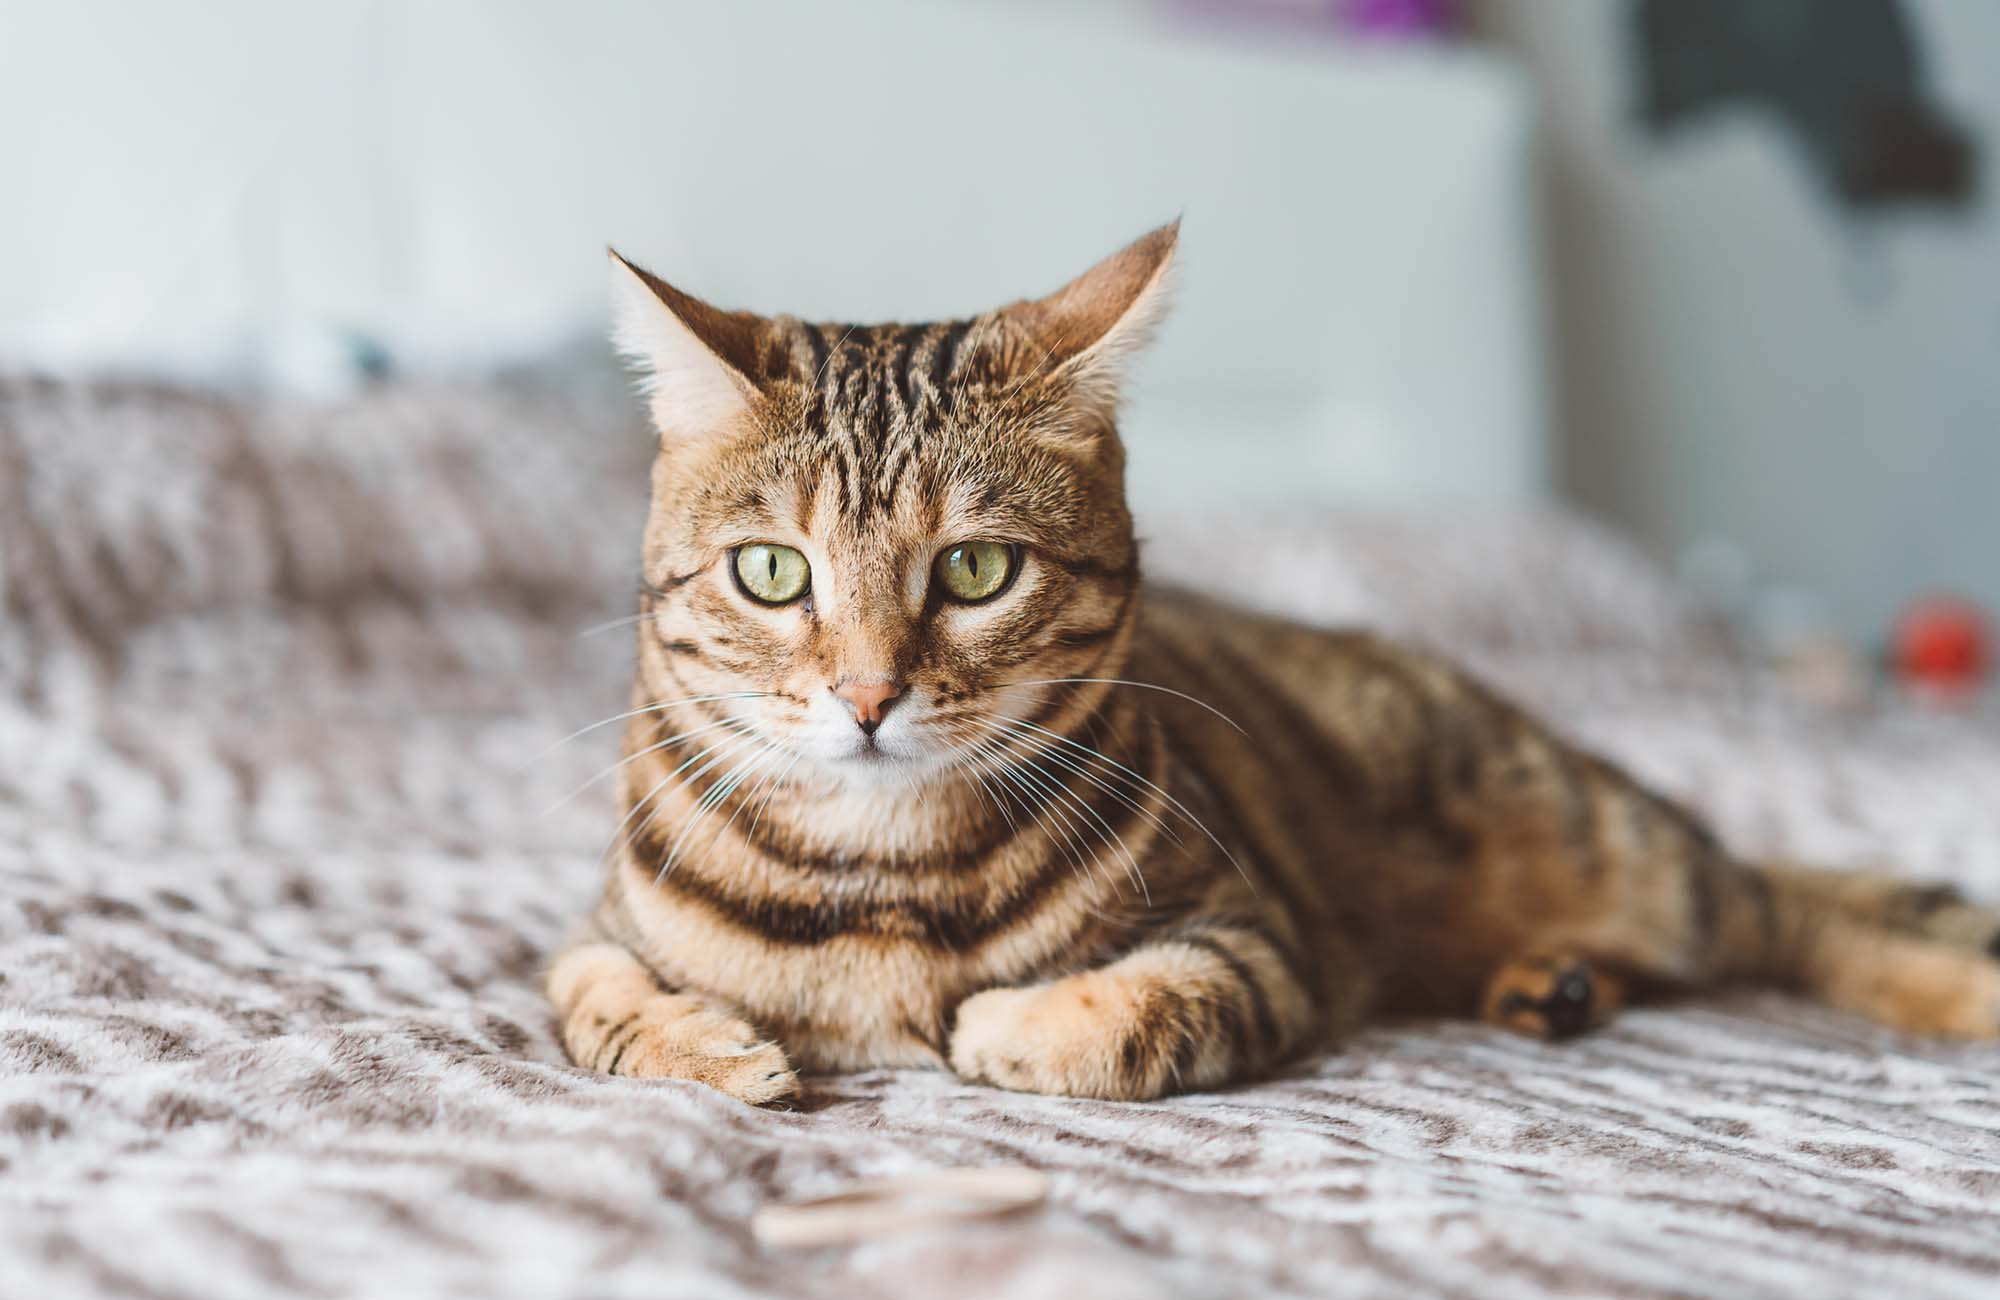 Cat relaxing on a bed